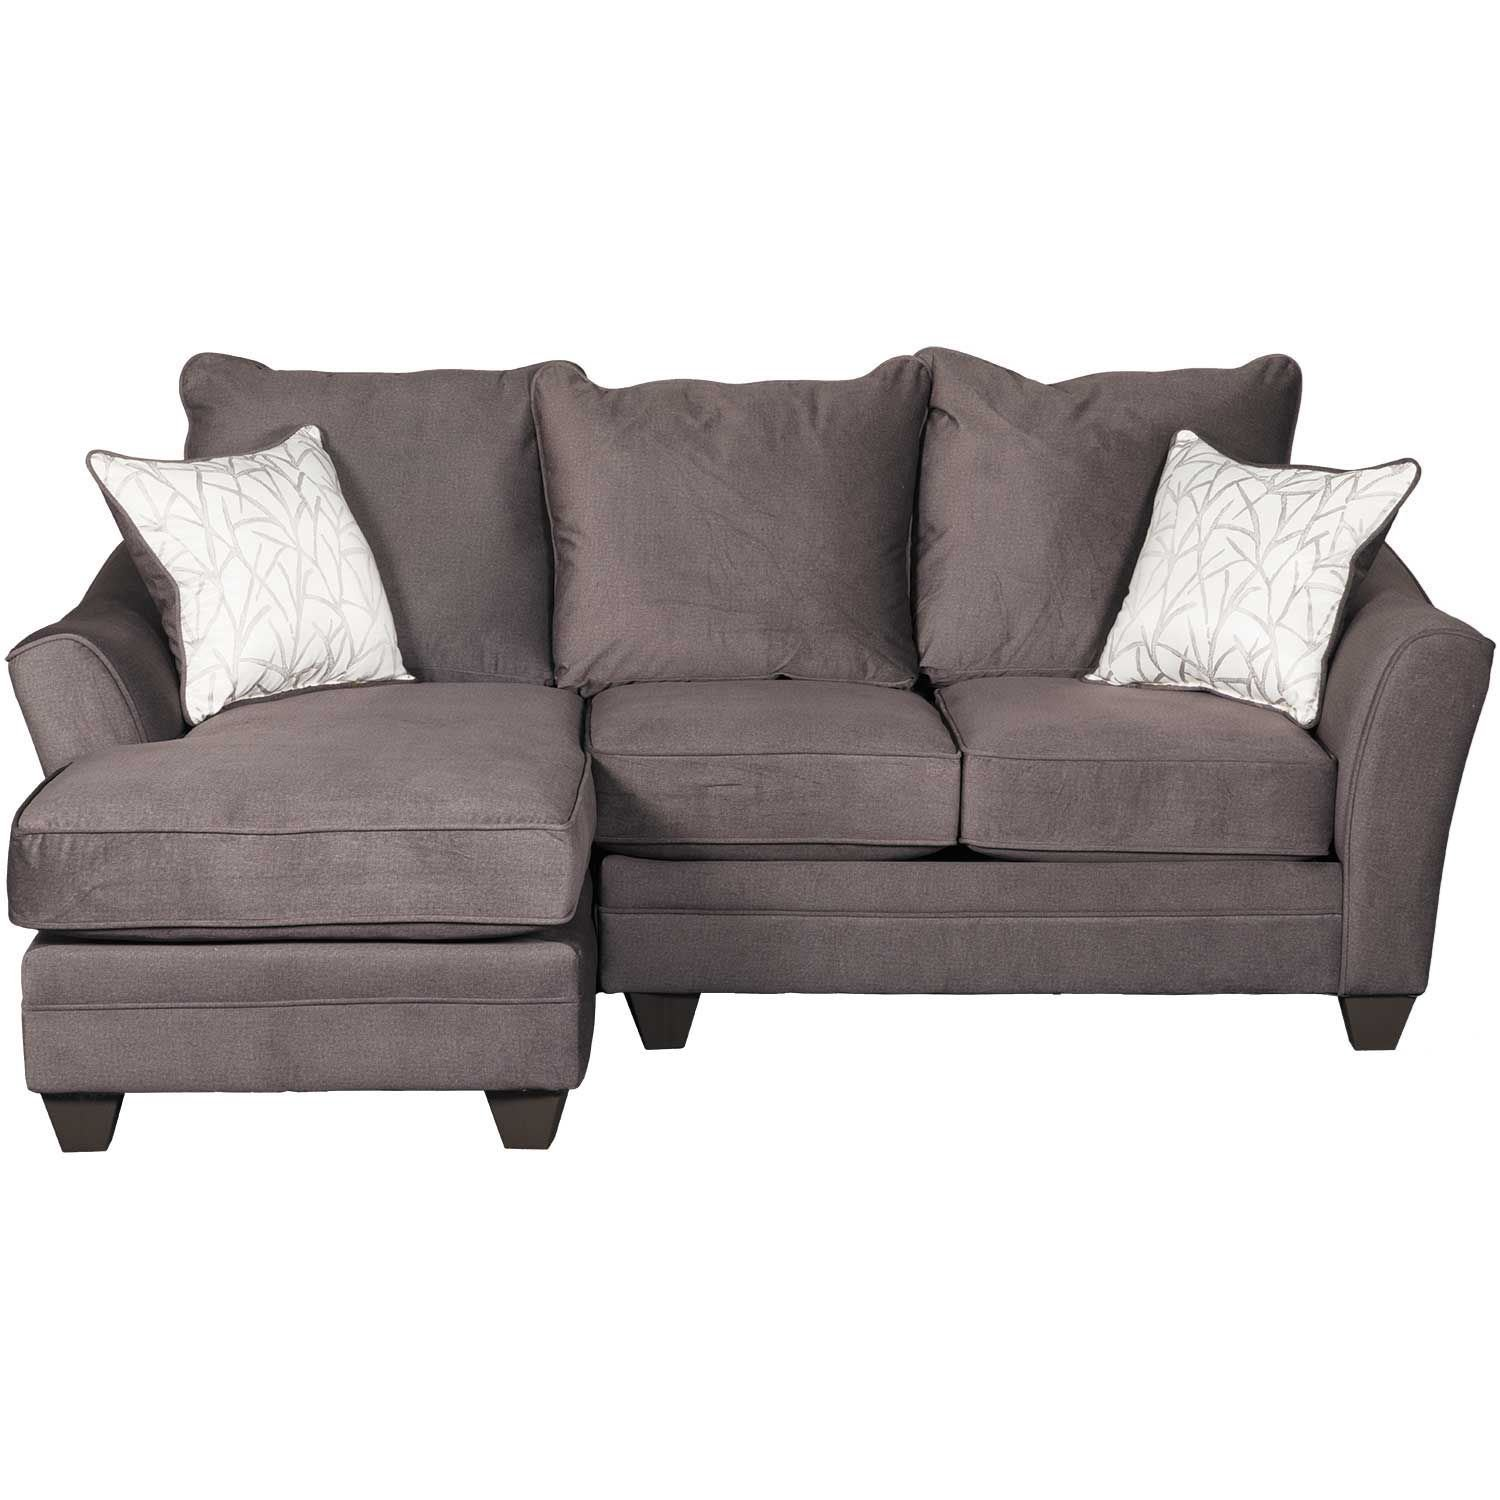 Tremendous Flannel Seal 2 Piece Sectional With Raf Loveseat Cjindustries Chair Design For Home Cjindustriesco